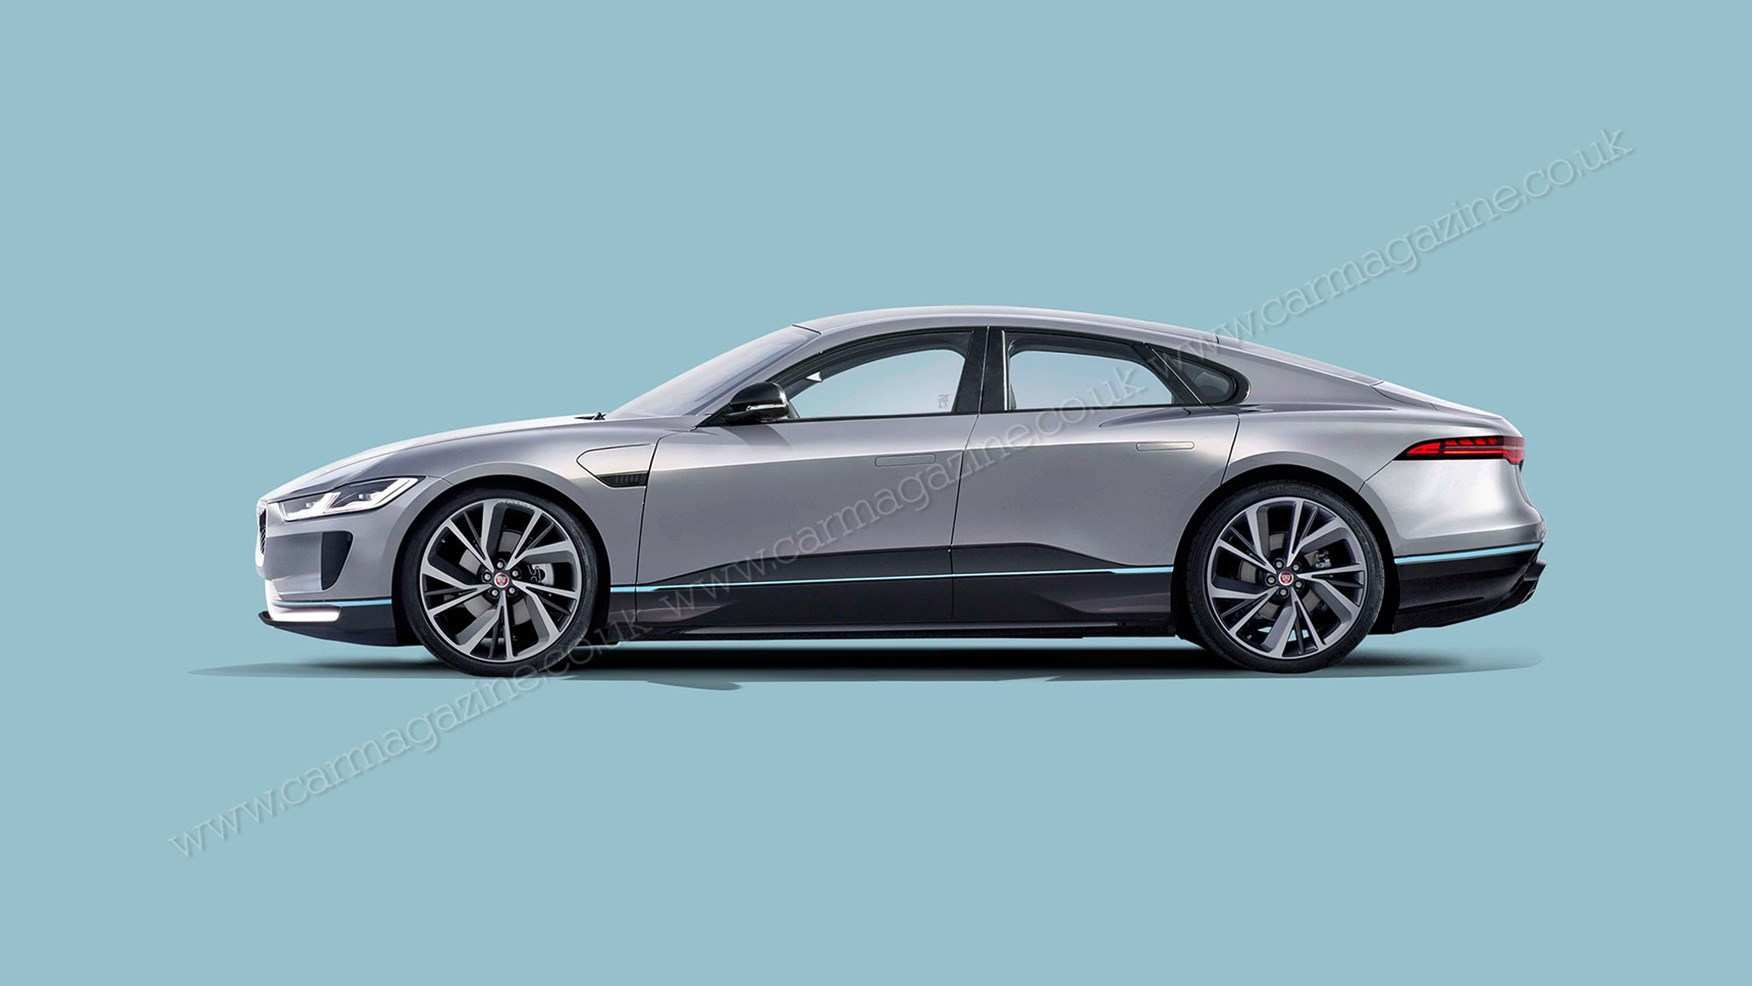 79 All New 2020 Jaguar Xj Launch Date Rumors by 2020 Jaguar Xj Launch Date